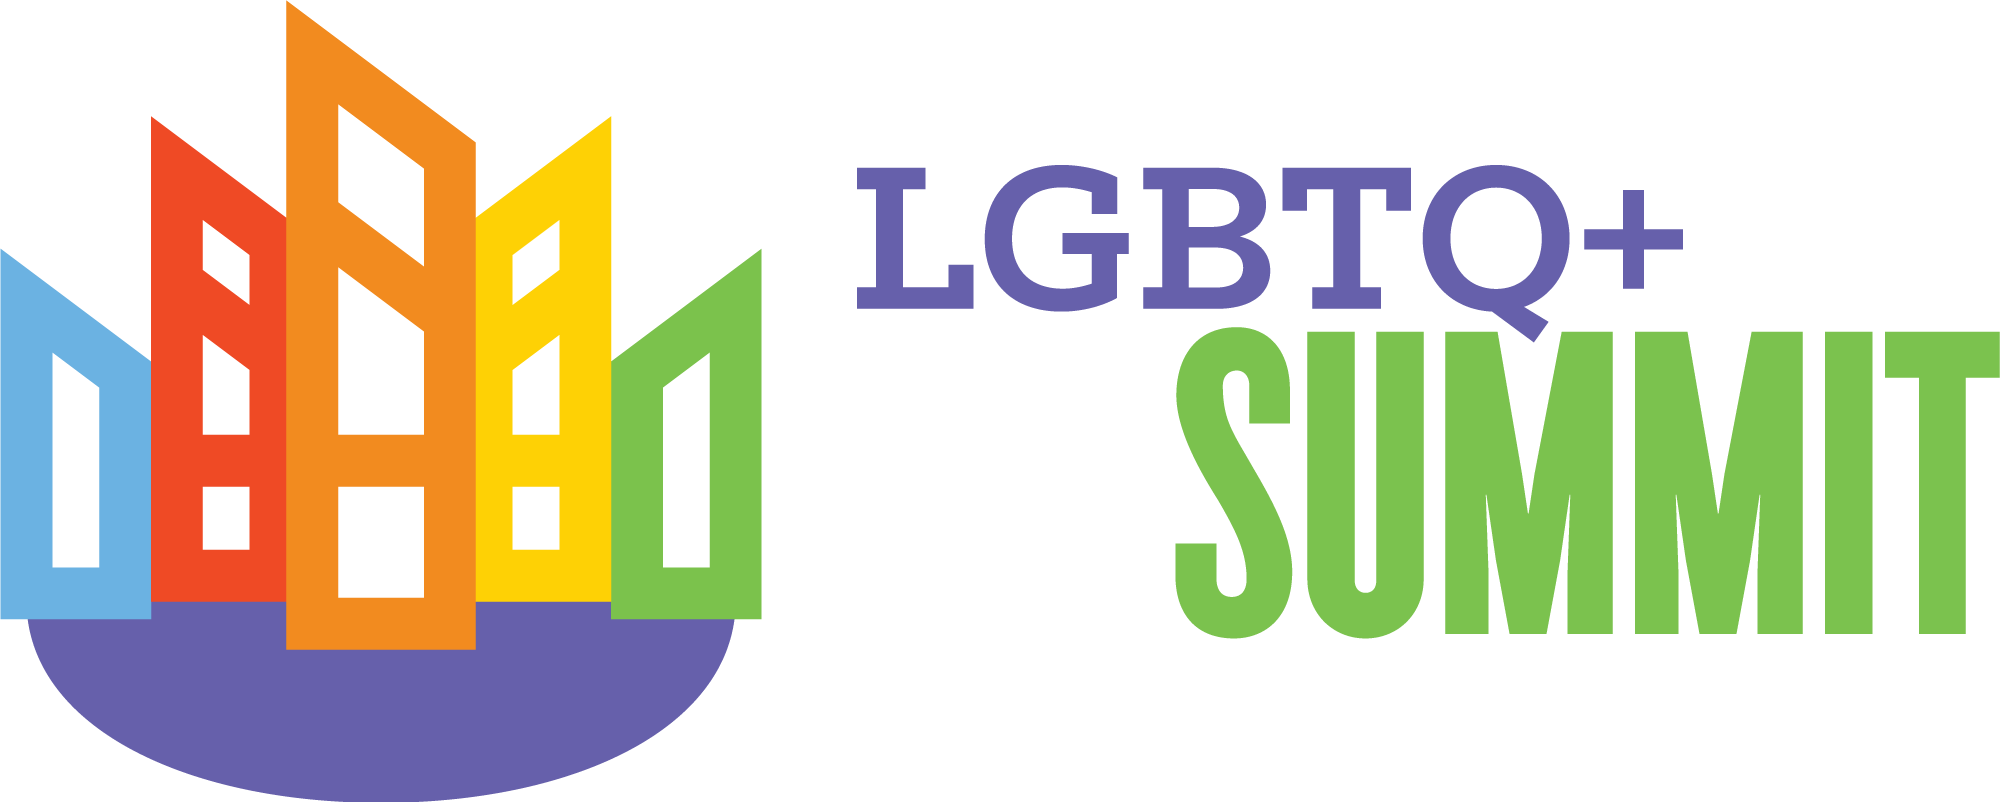 LGBTQ+ Summit Logo